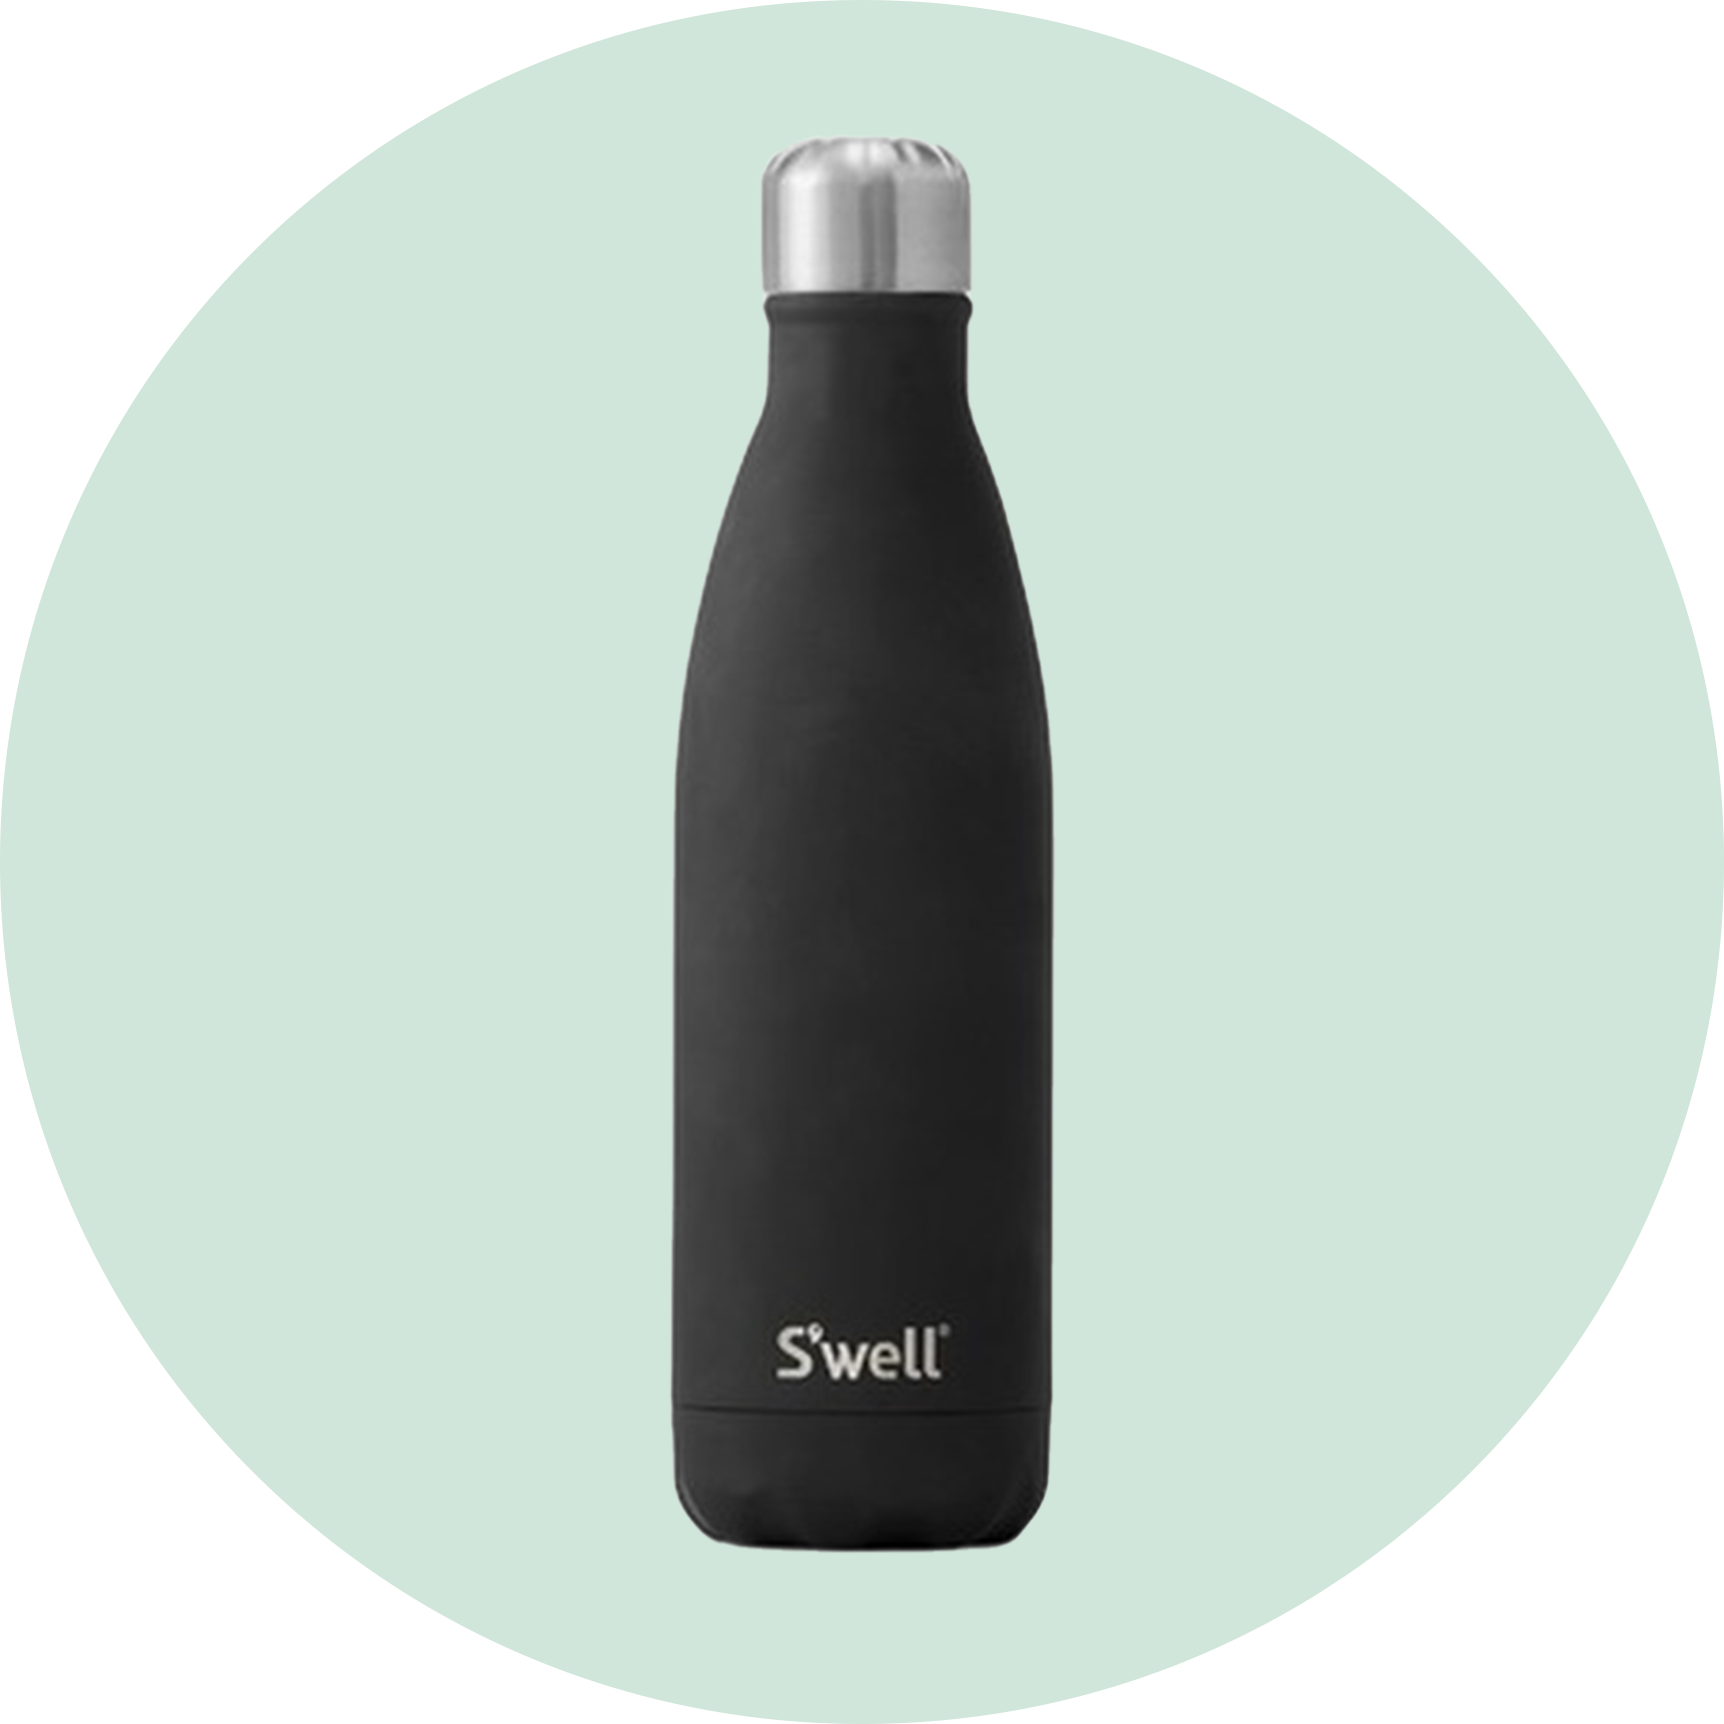 S'well Bottle